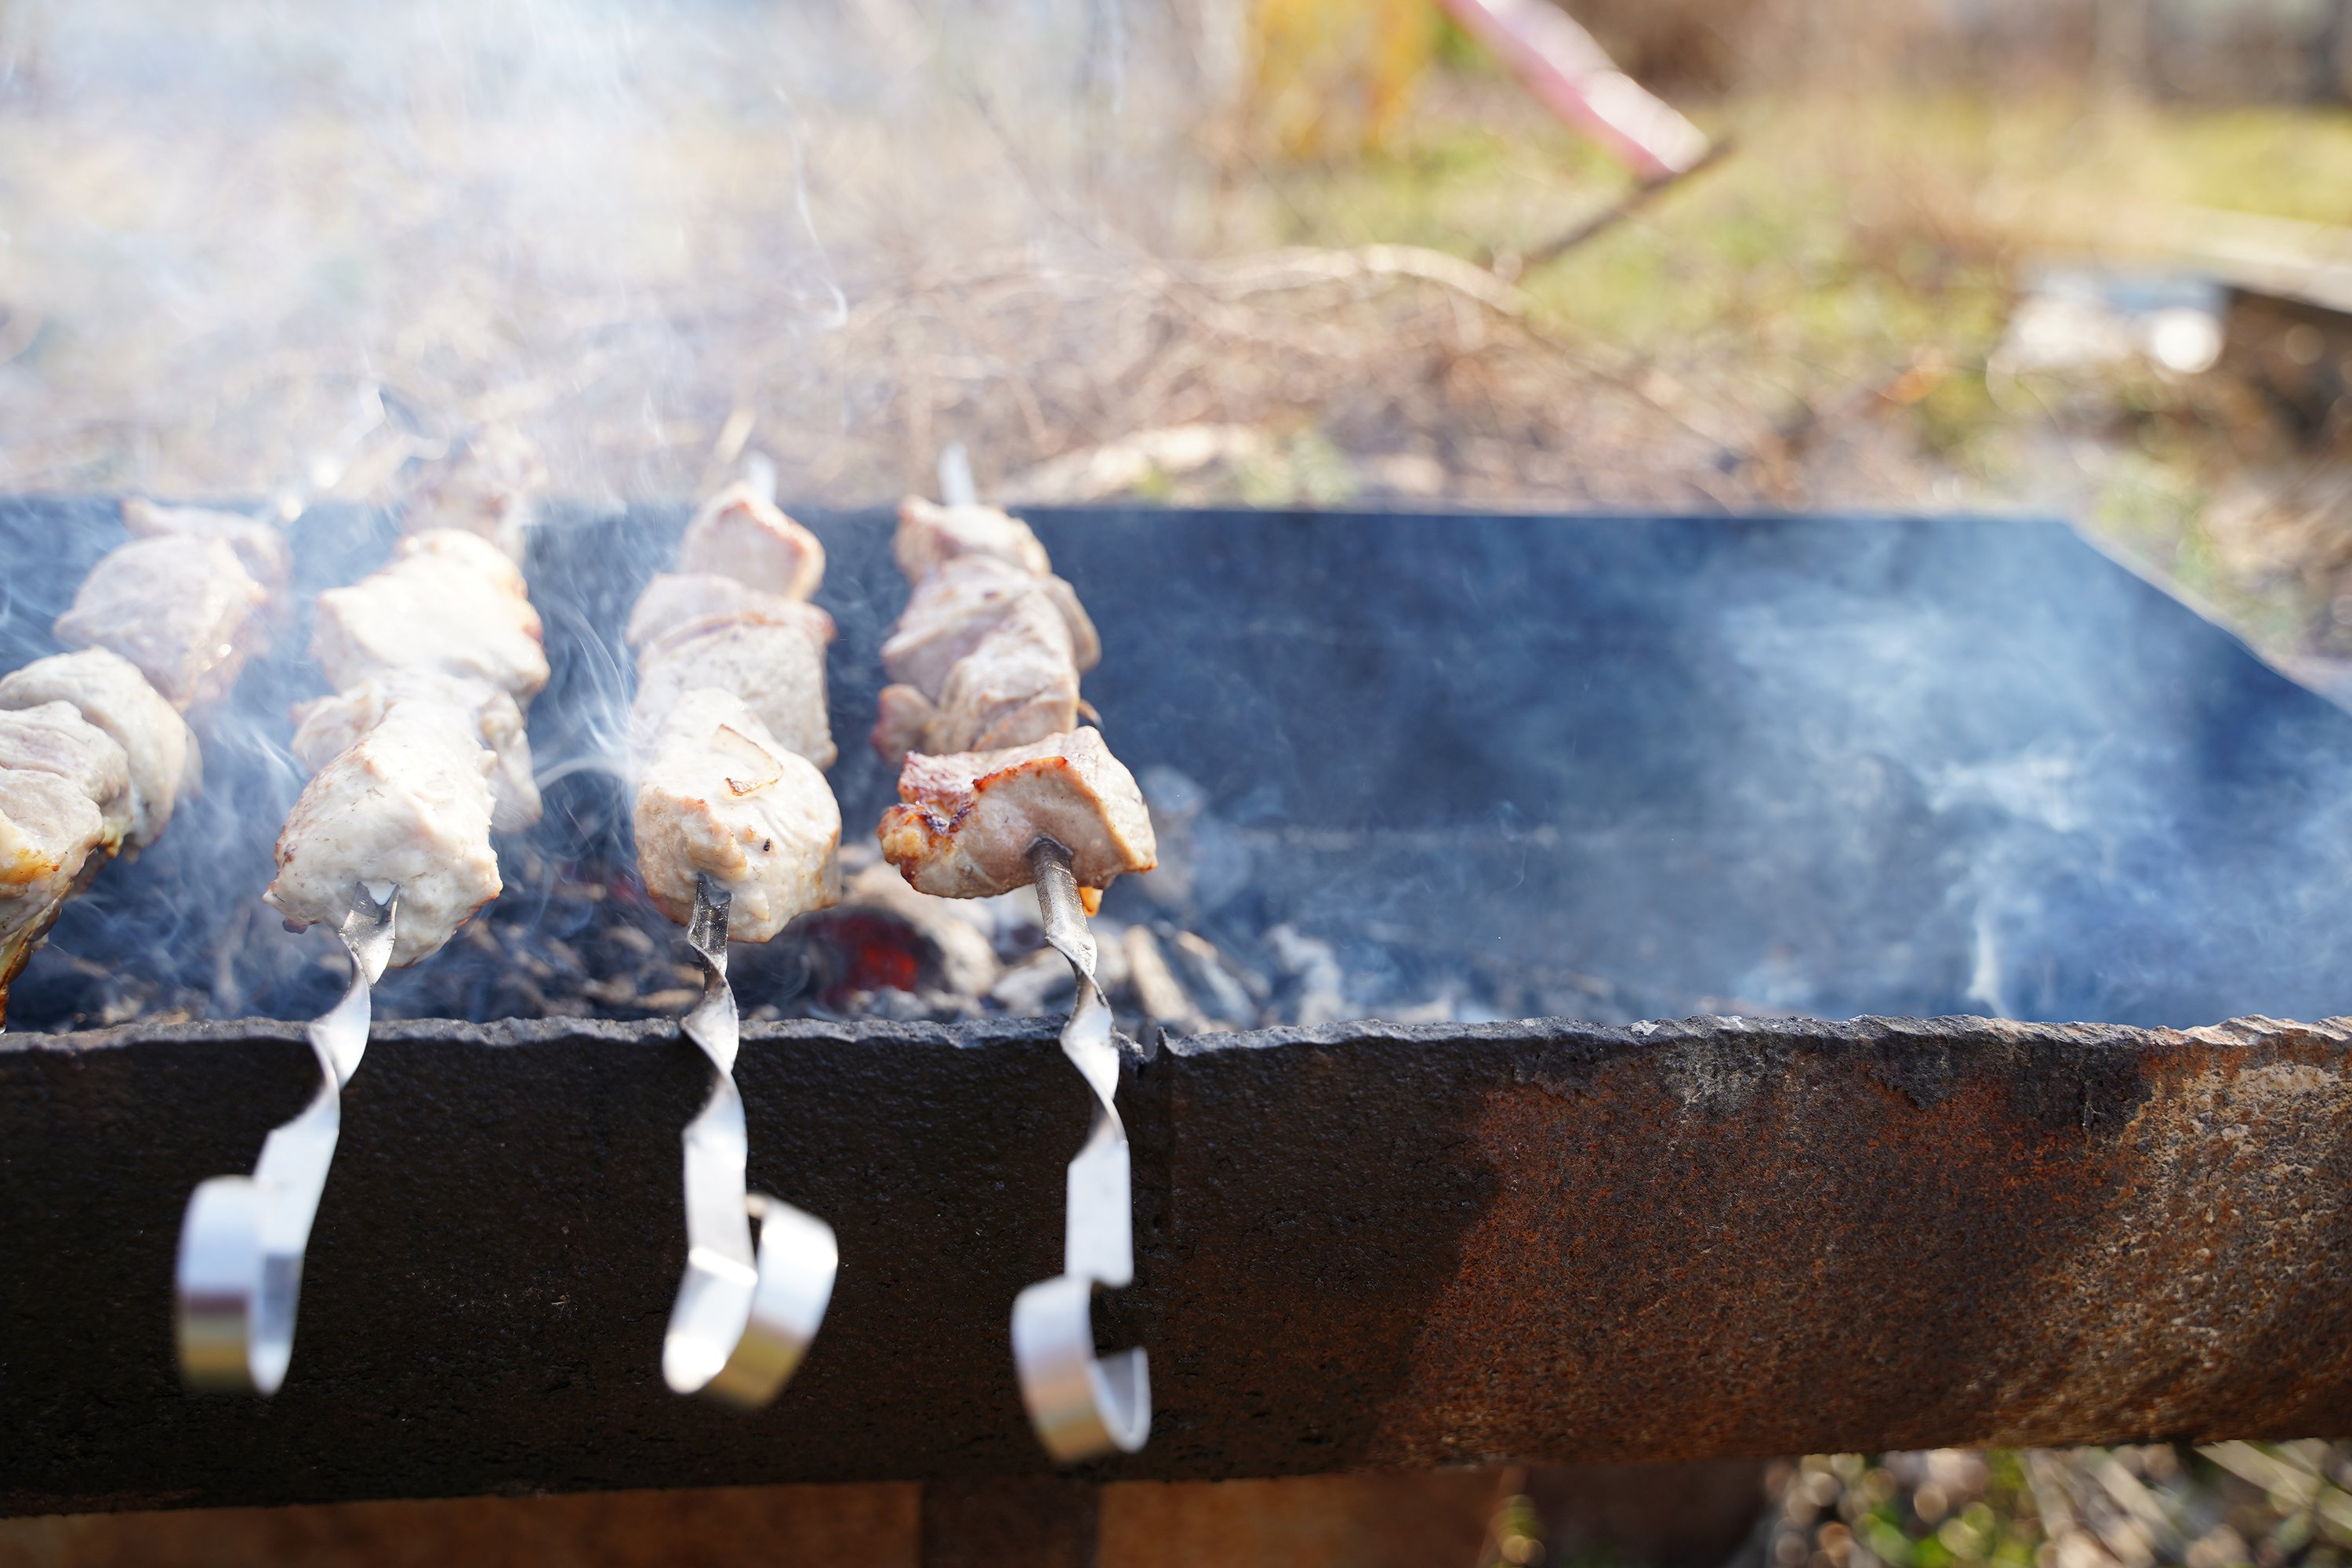 BBQ pork, beef meat, fried in barbecue. Grill on skewers example image 1